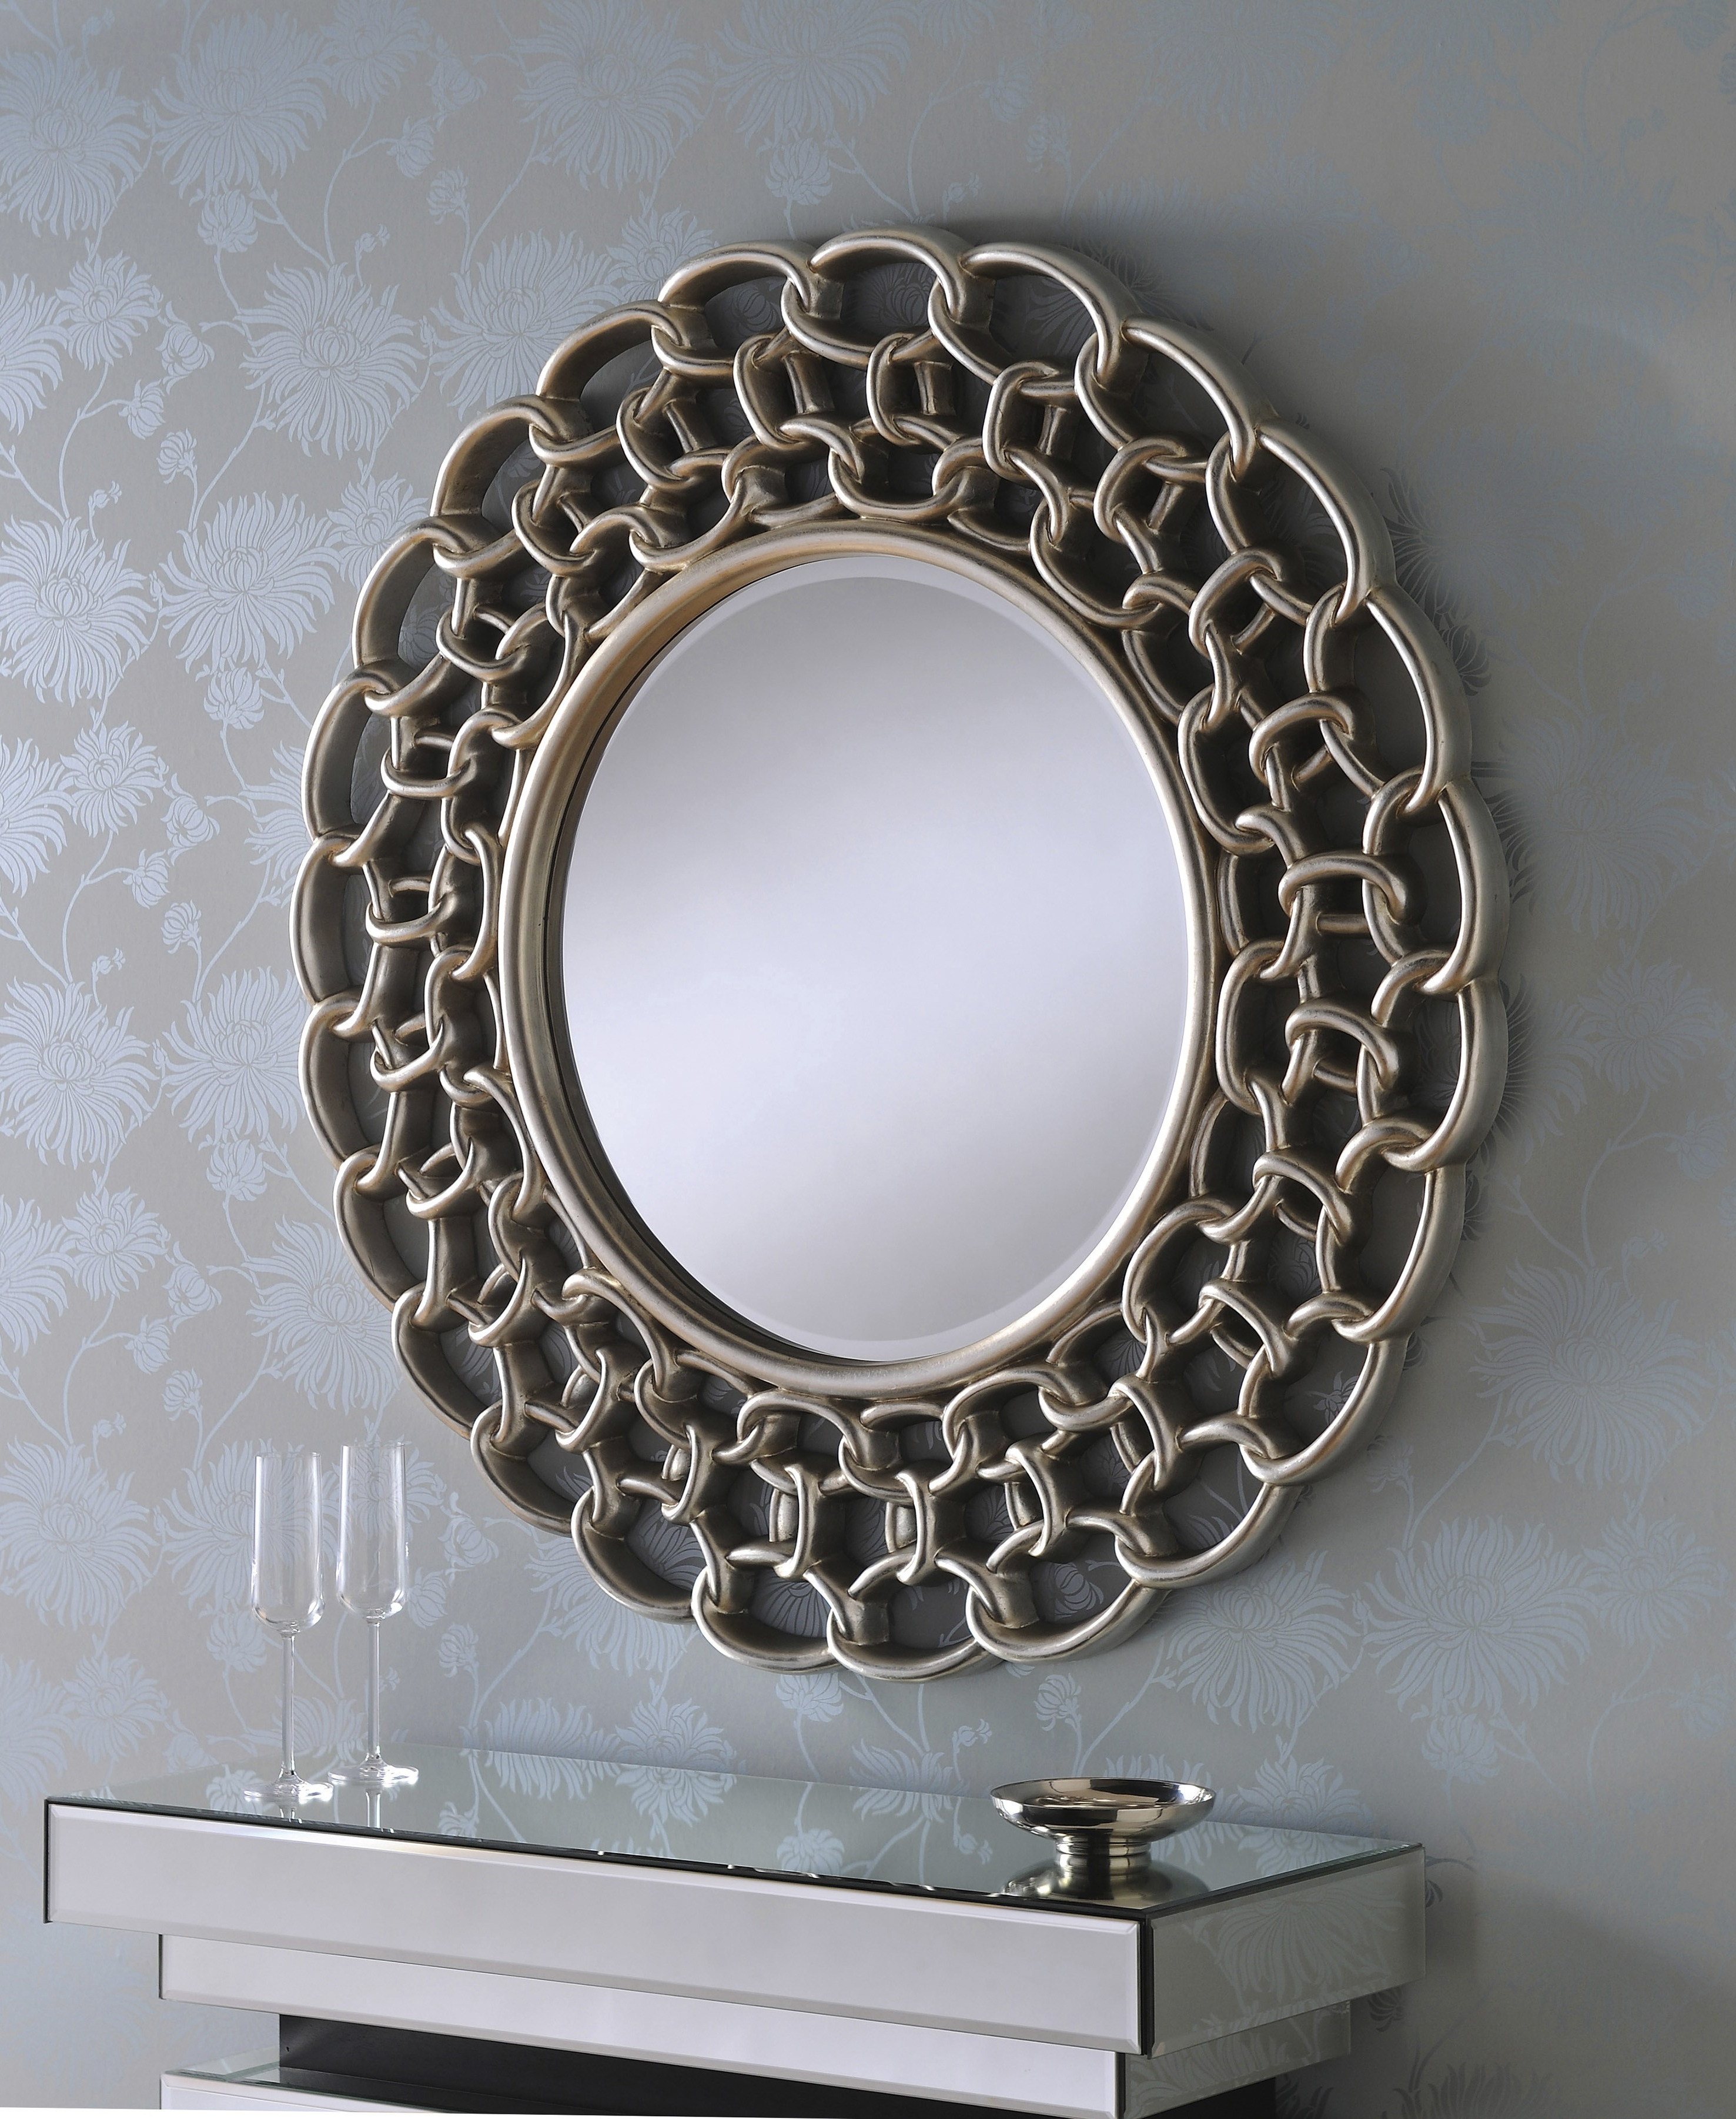 Verona Large Round Silver Linked Chain Framed Wall Mirror Pertaining To Famous Round Silver Wall Mirrors (View 11 of 20)